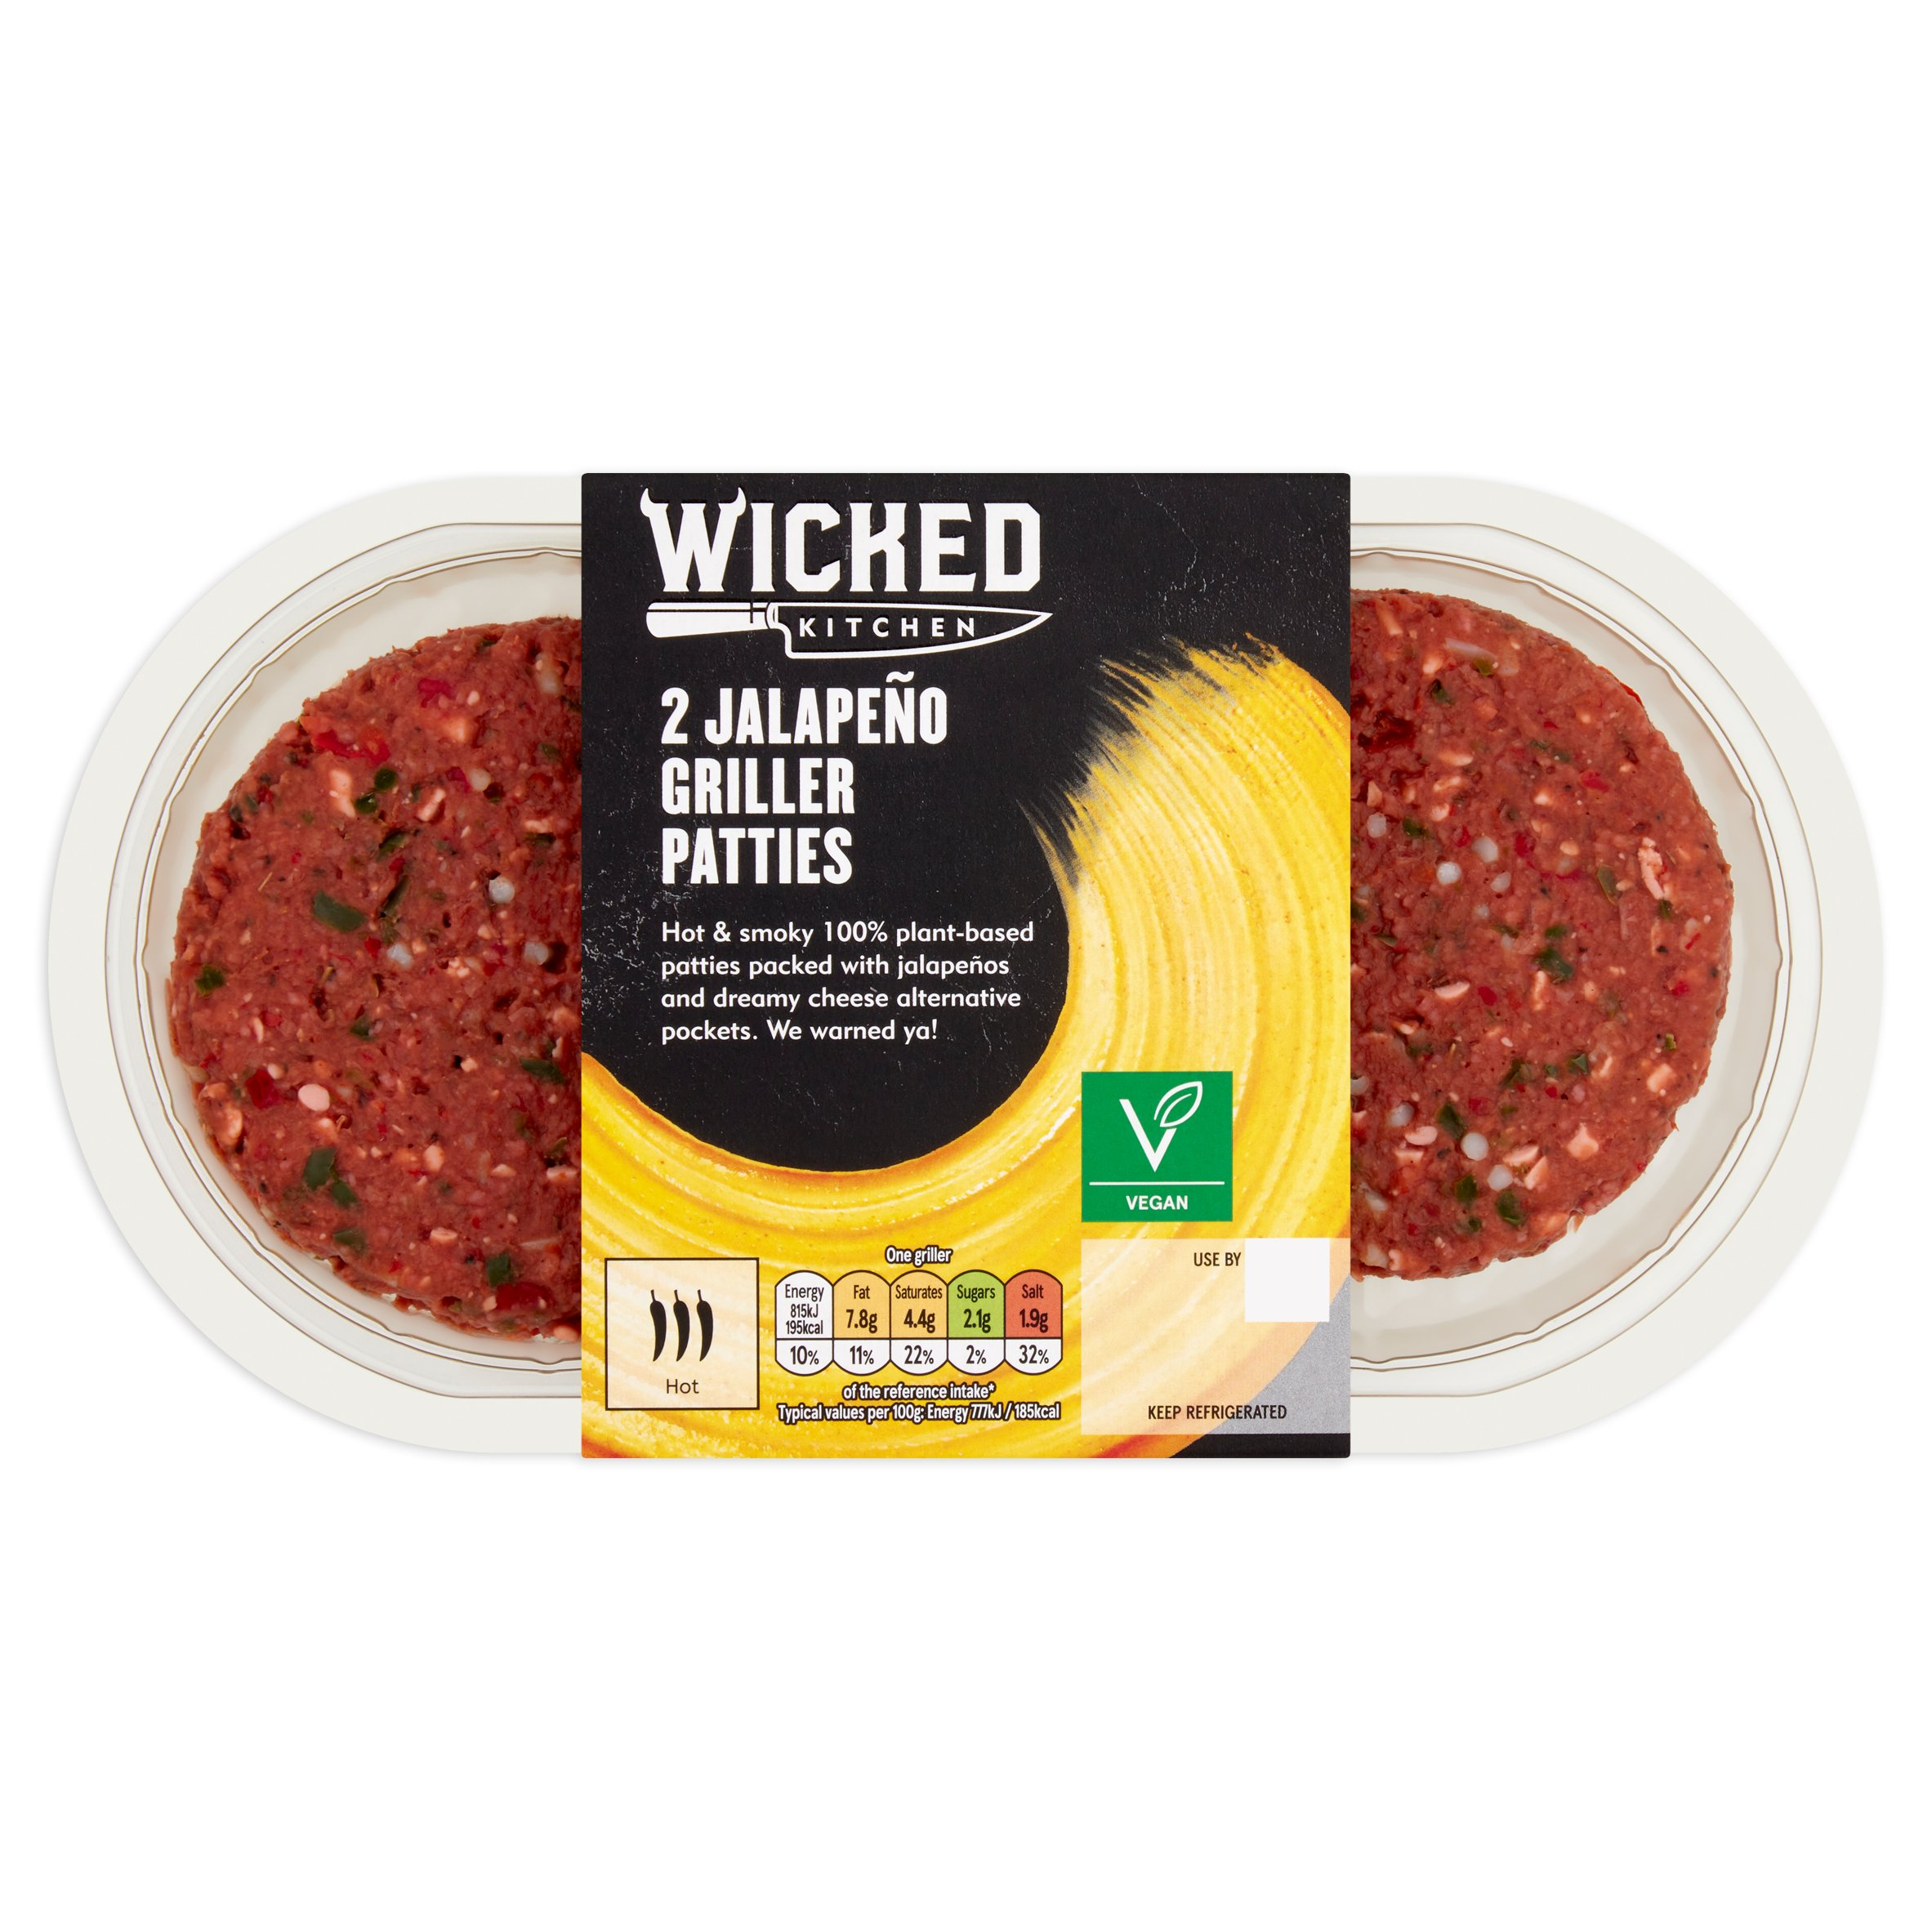 Wicked Kitchen 2 Jalapeno Griller Patties 226G